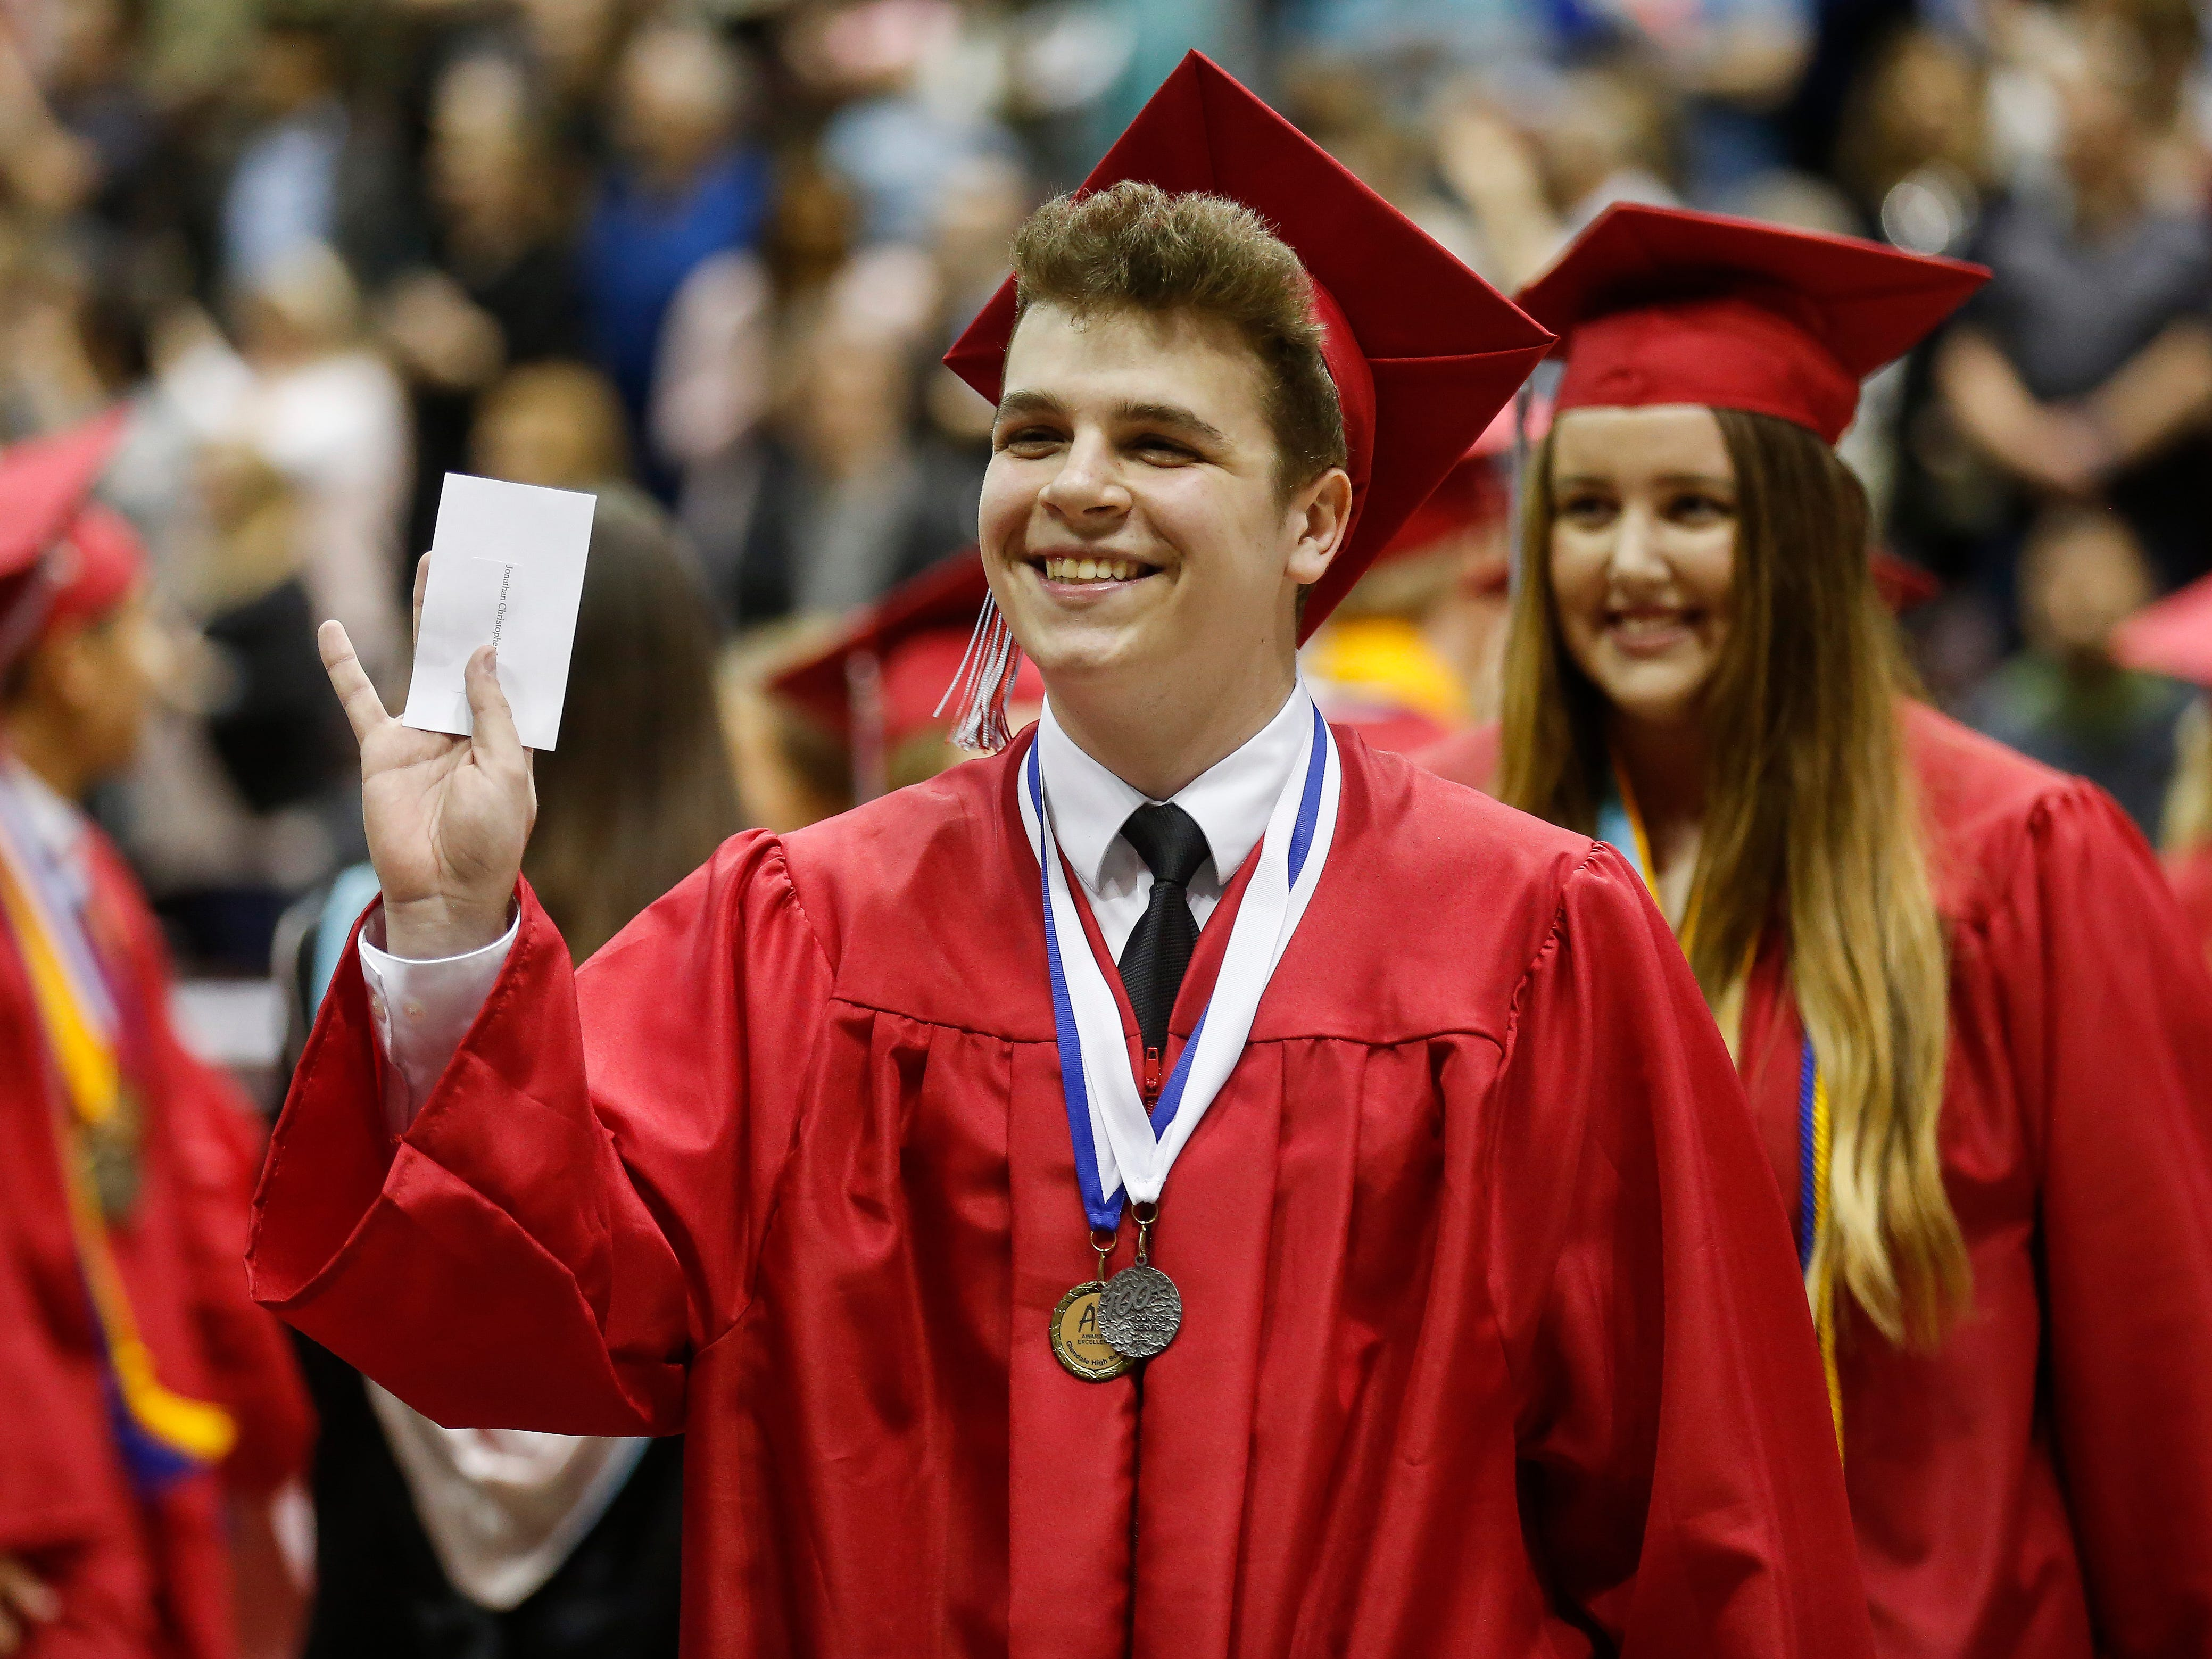 Class President Jonathan Ivanoff waves during Glendale High School's Commencement Ceremony at JQH Arena on Thursday, May 9, 2019.